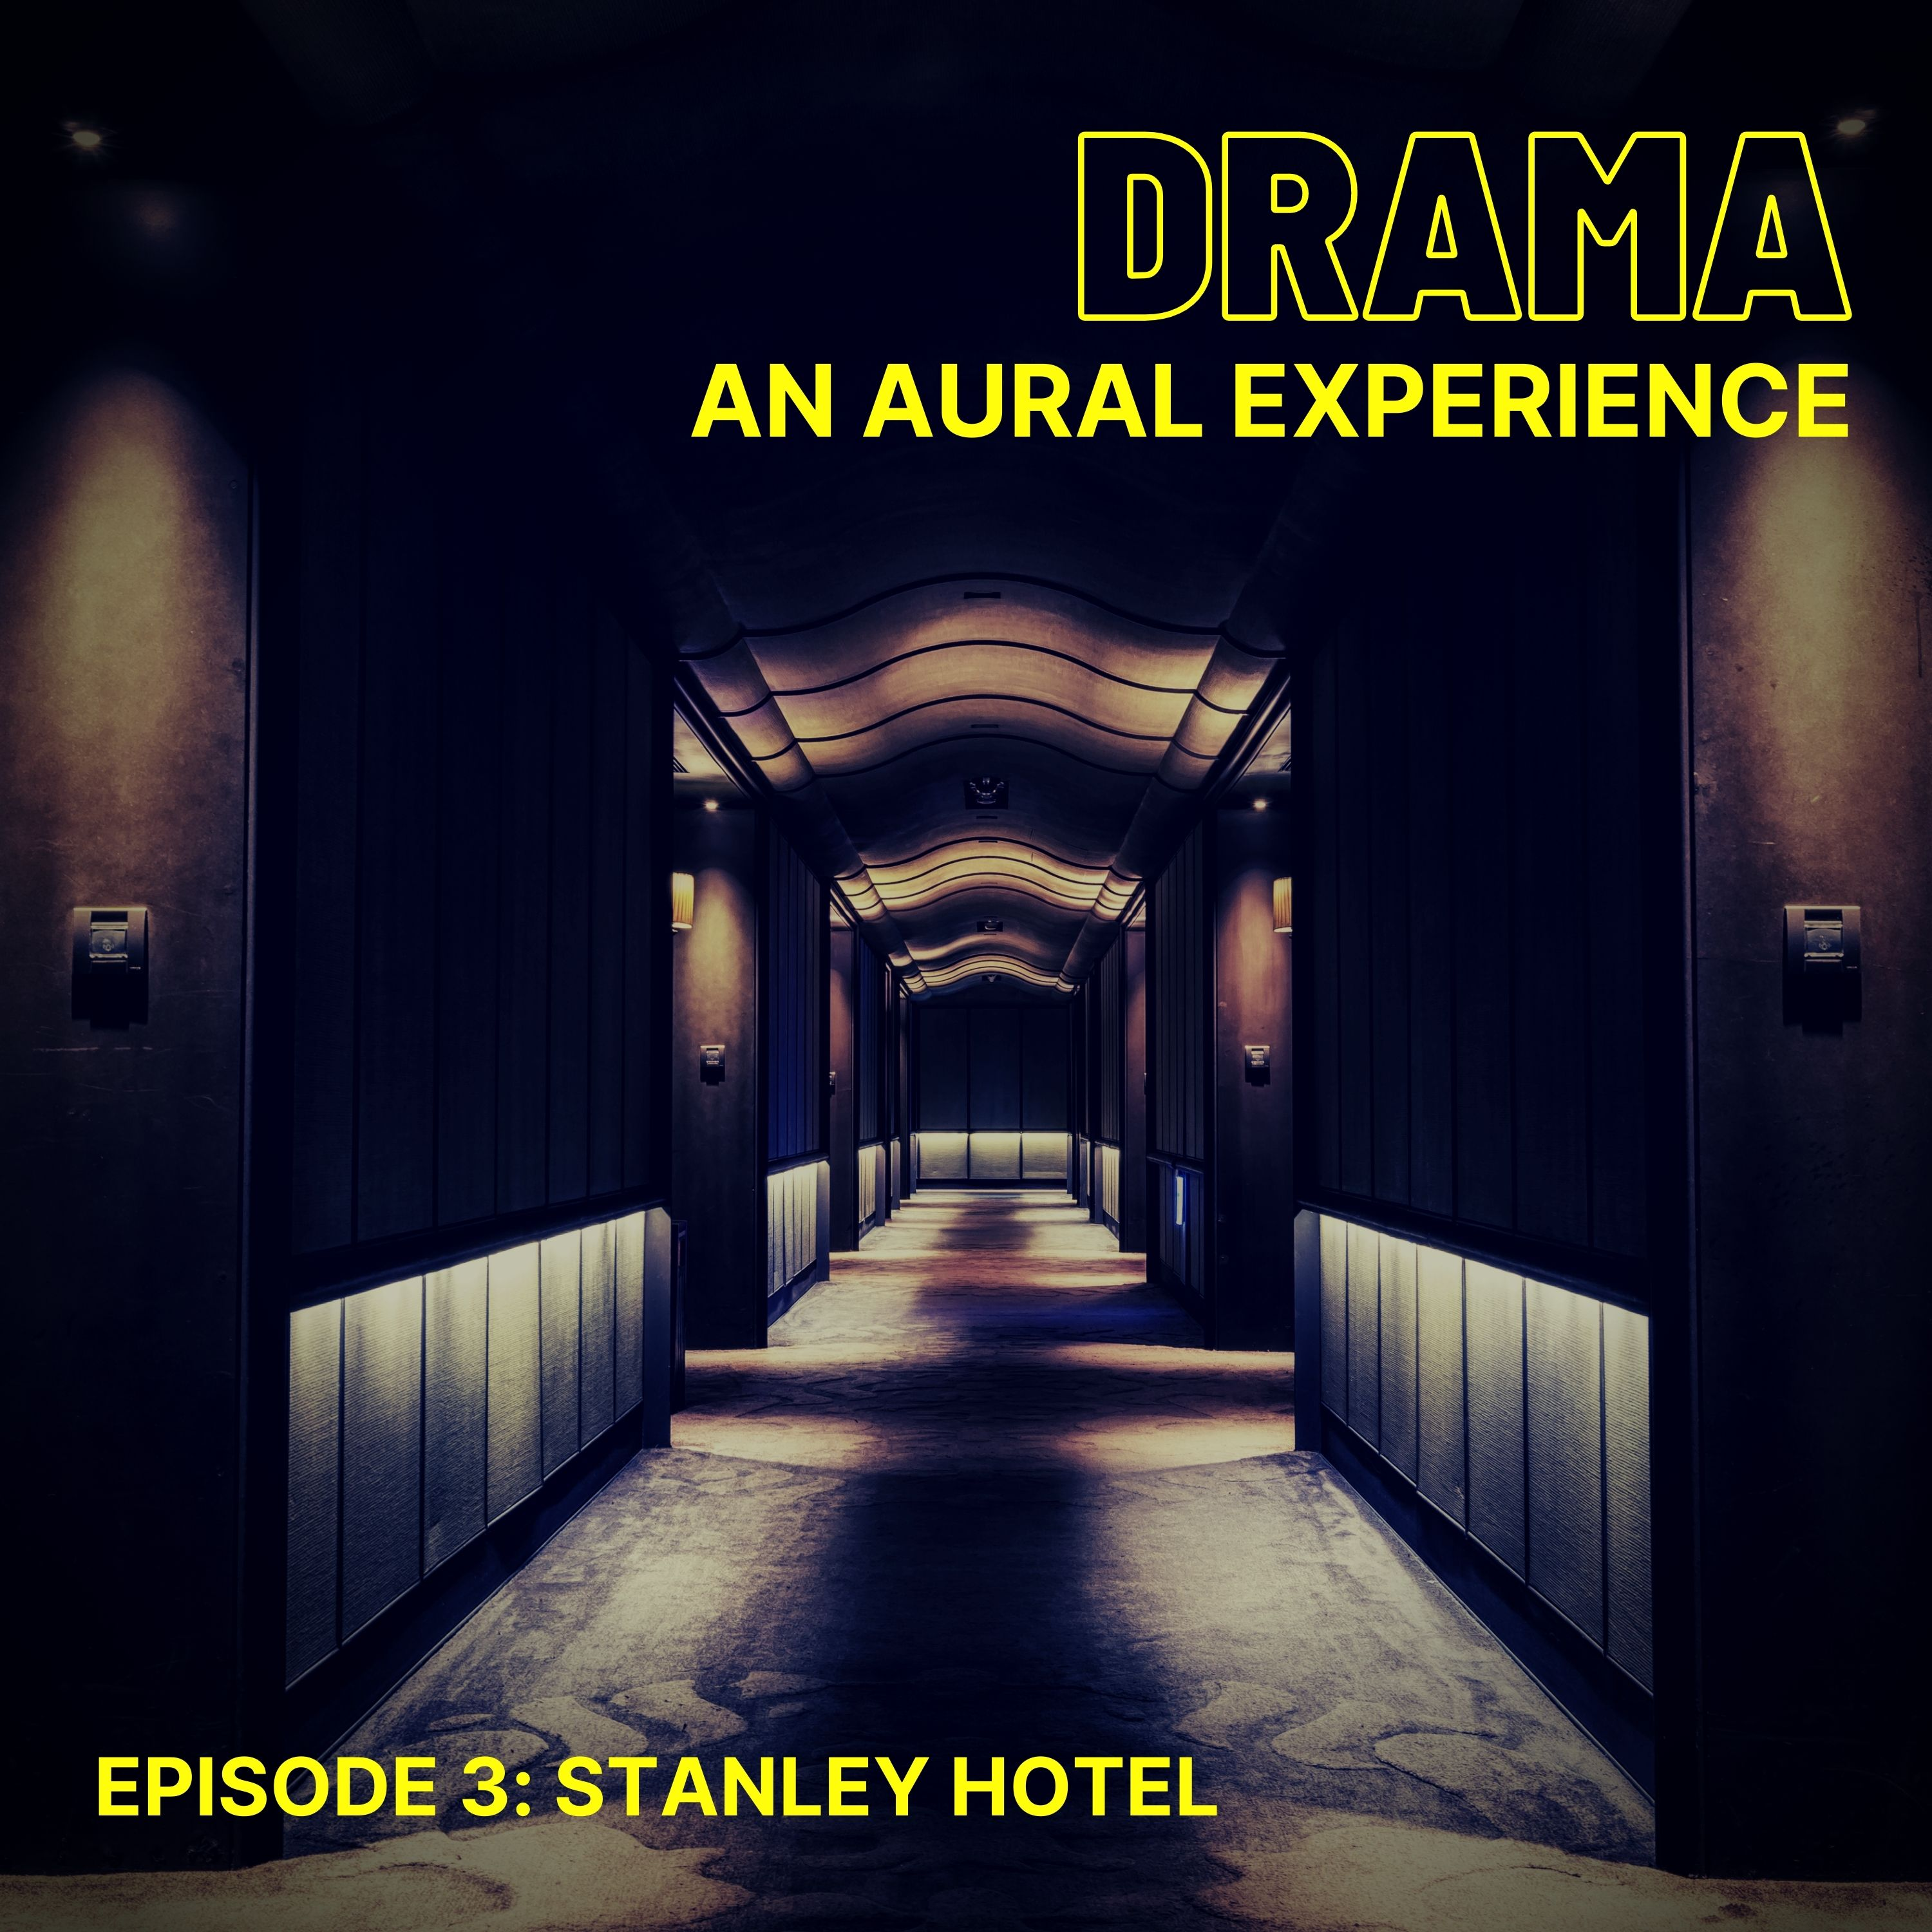 Artwork for podcast DRAMA - an aural experience